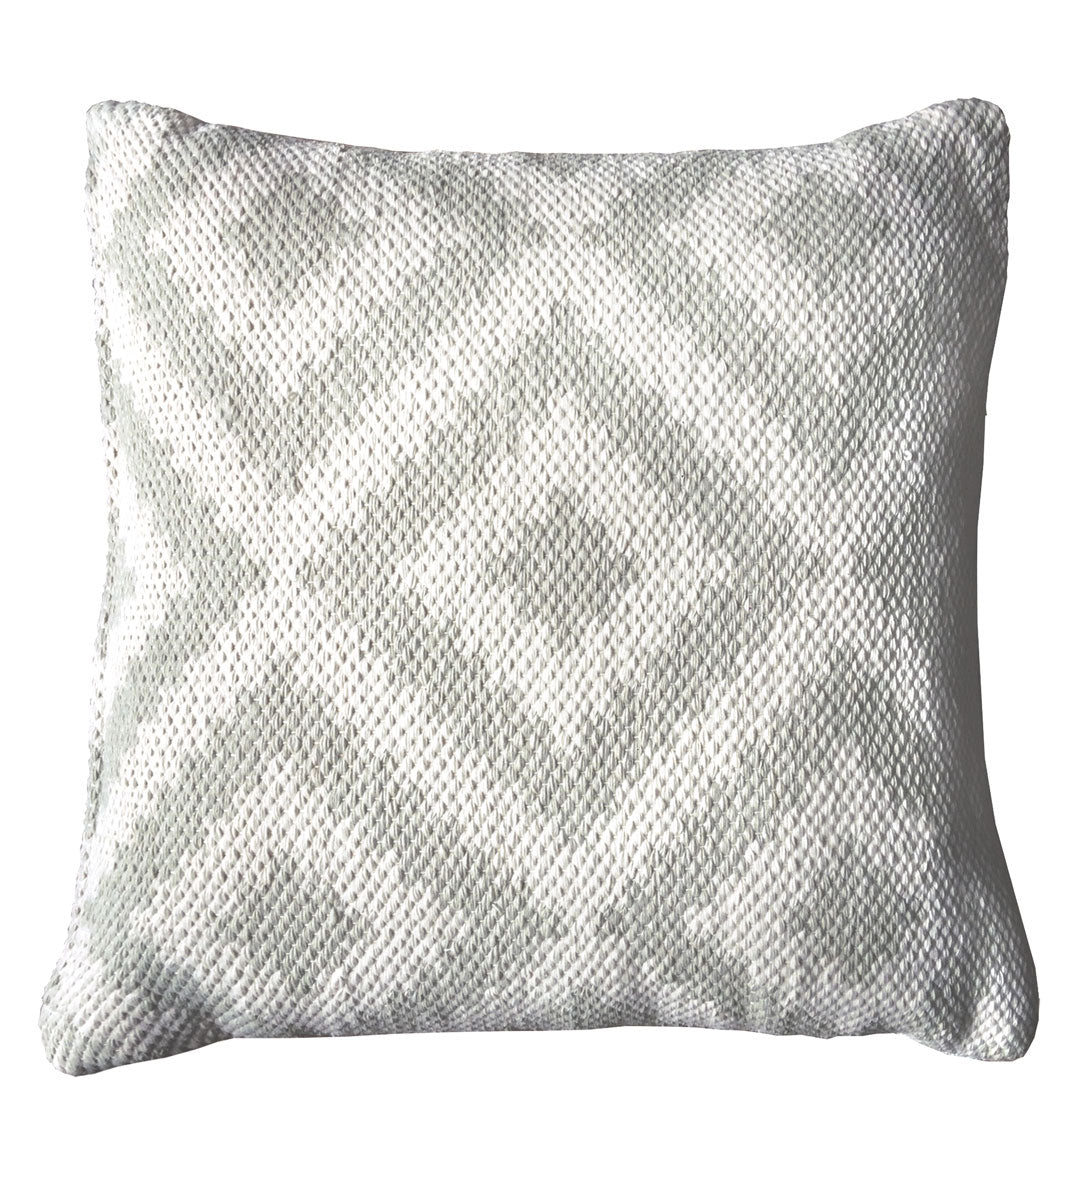 Ava Indoor Outdoor Cushion (Light Sage Green/Light Cream)